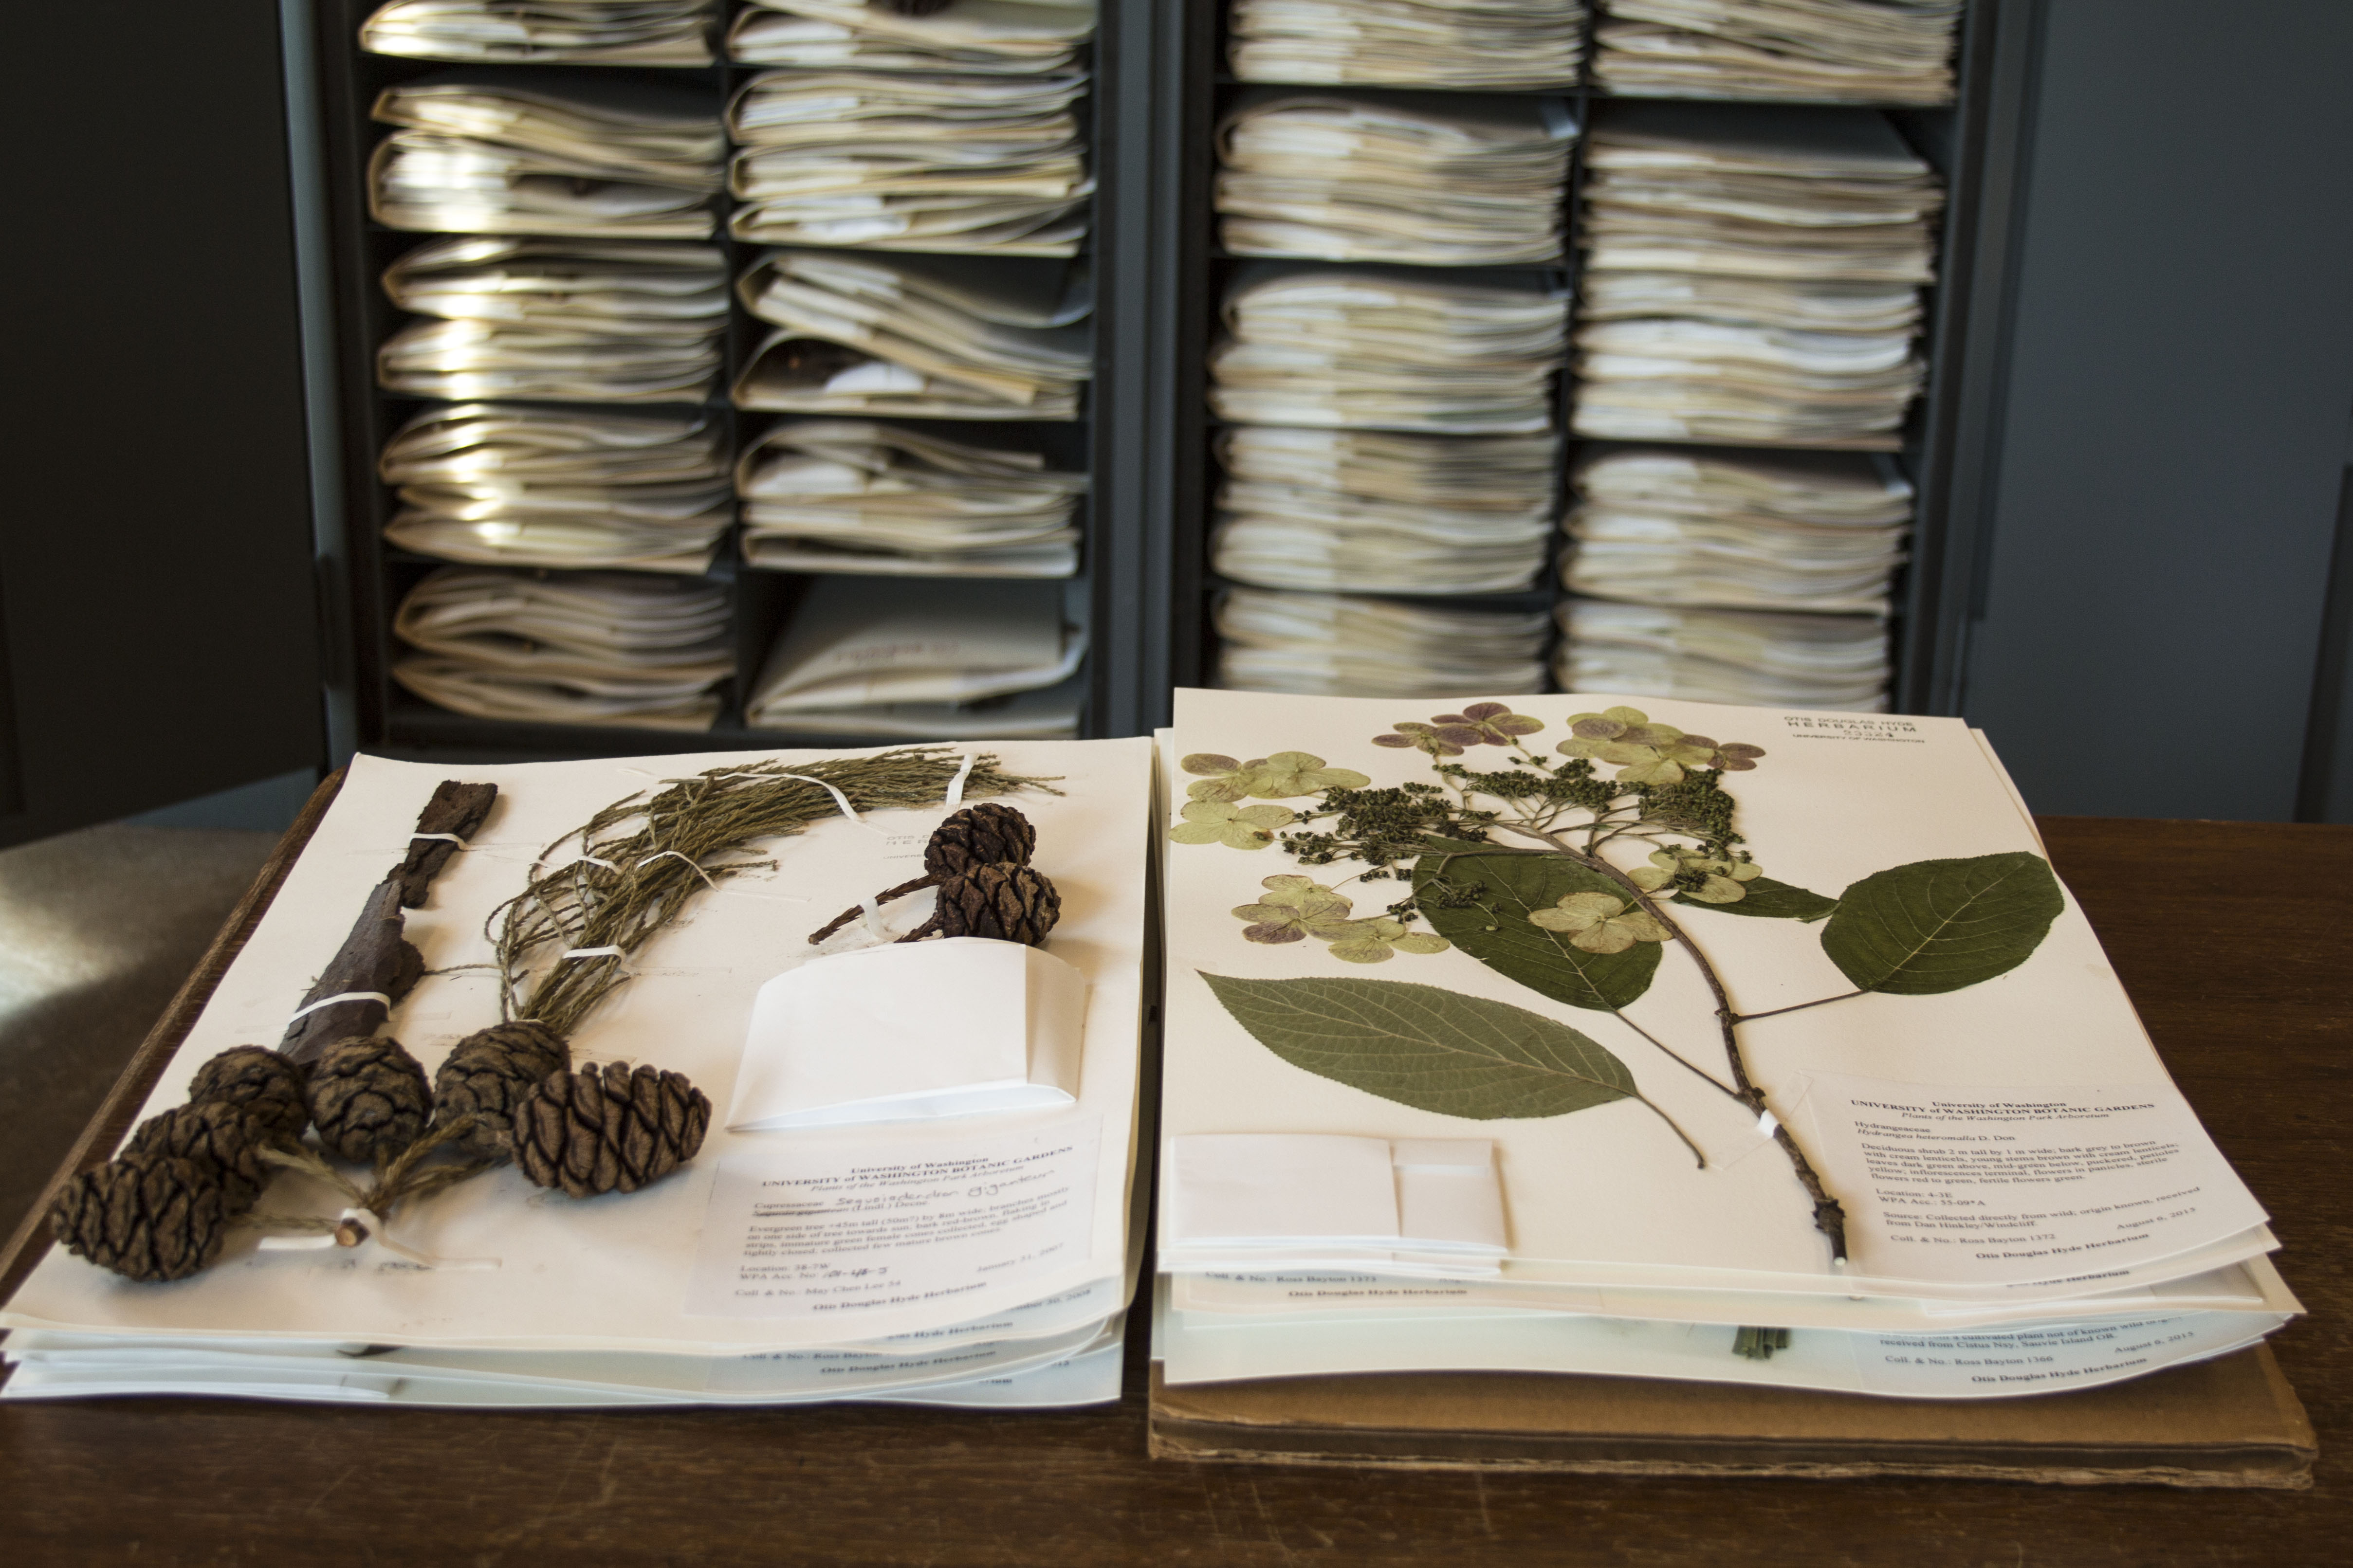 Herbarium cabinets with a Sequoiadendron and Hydrangea on display